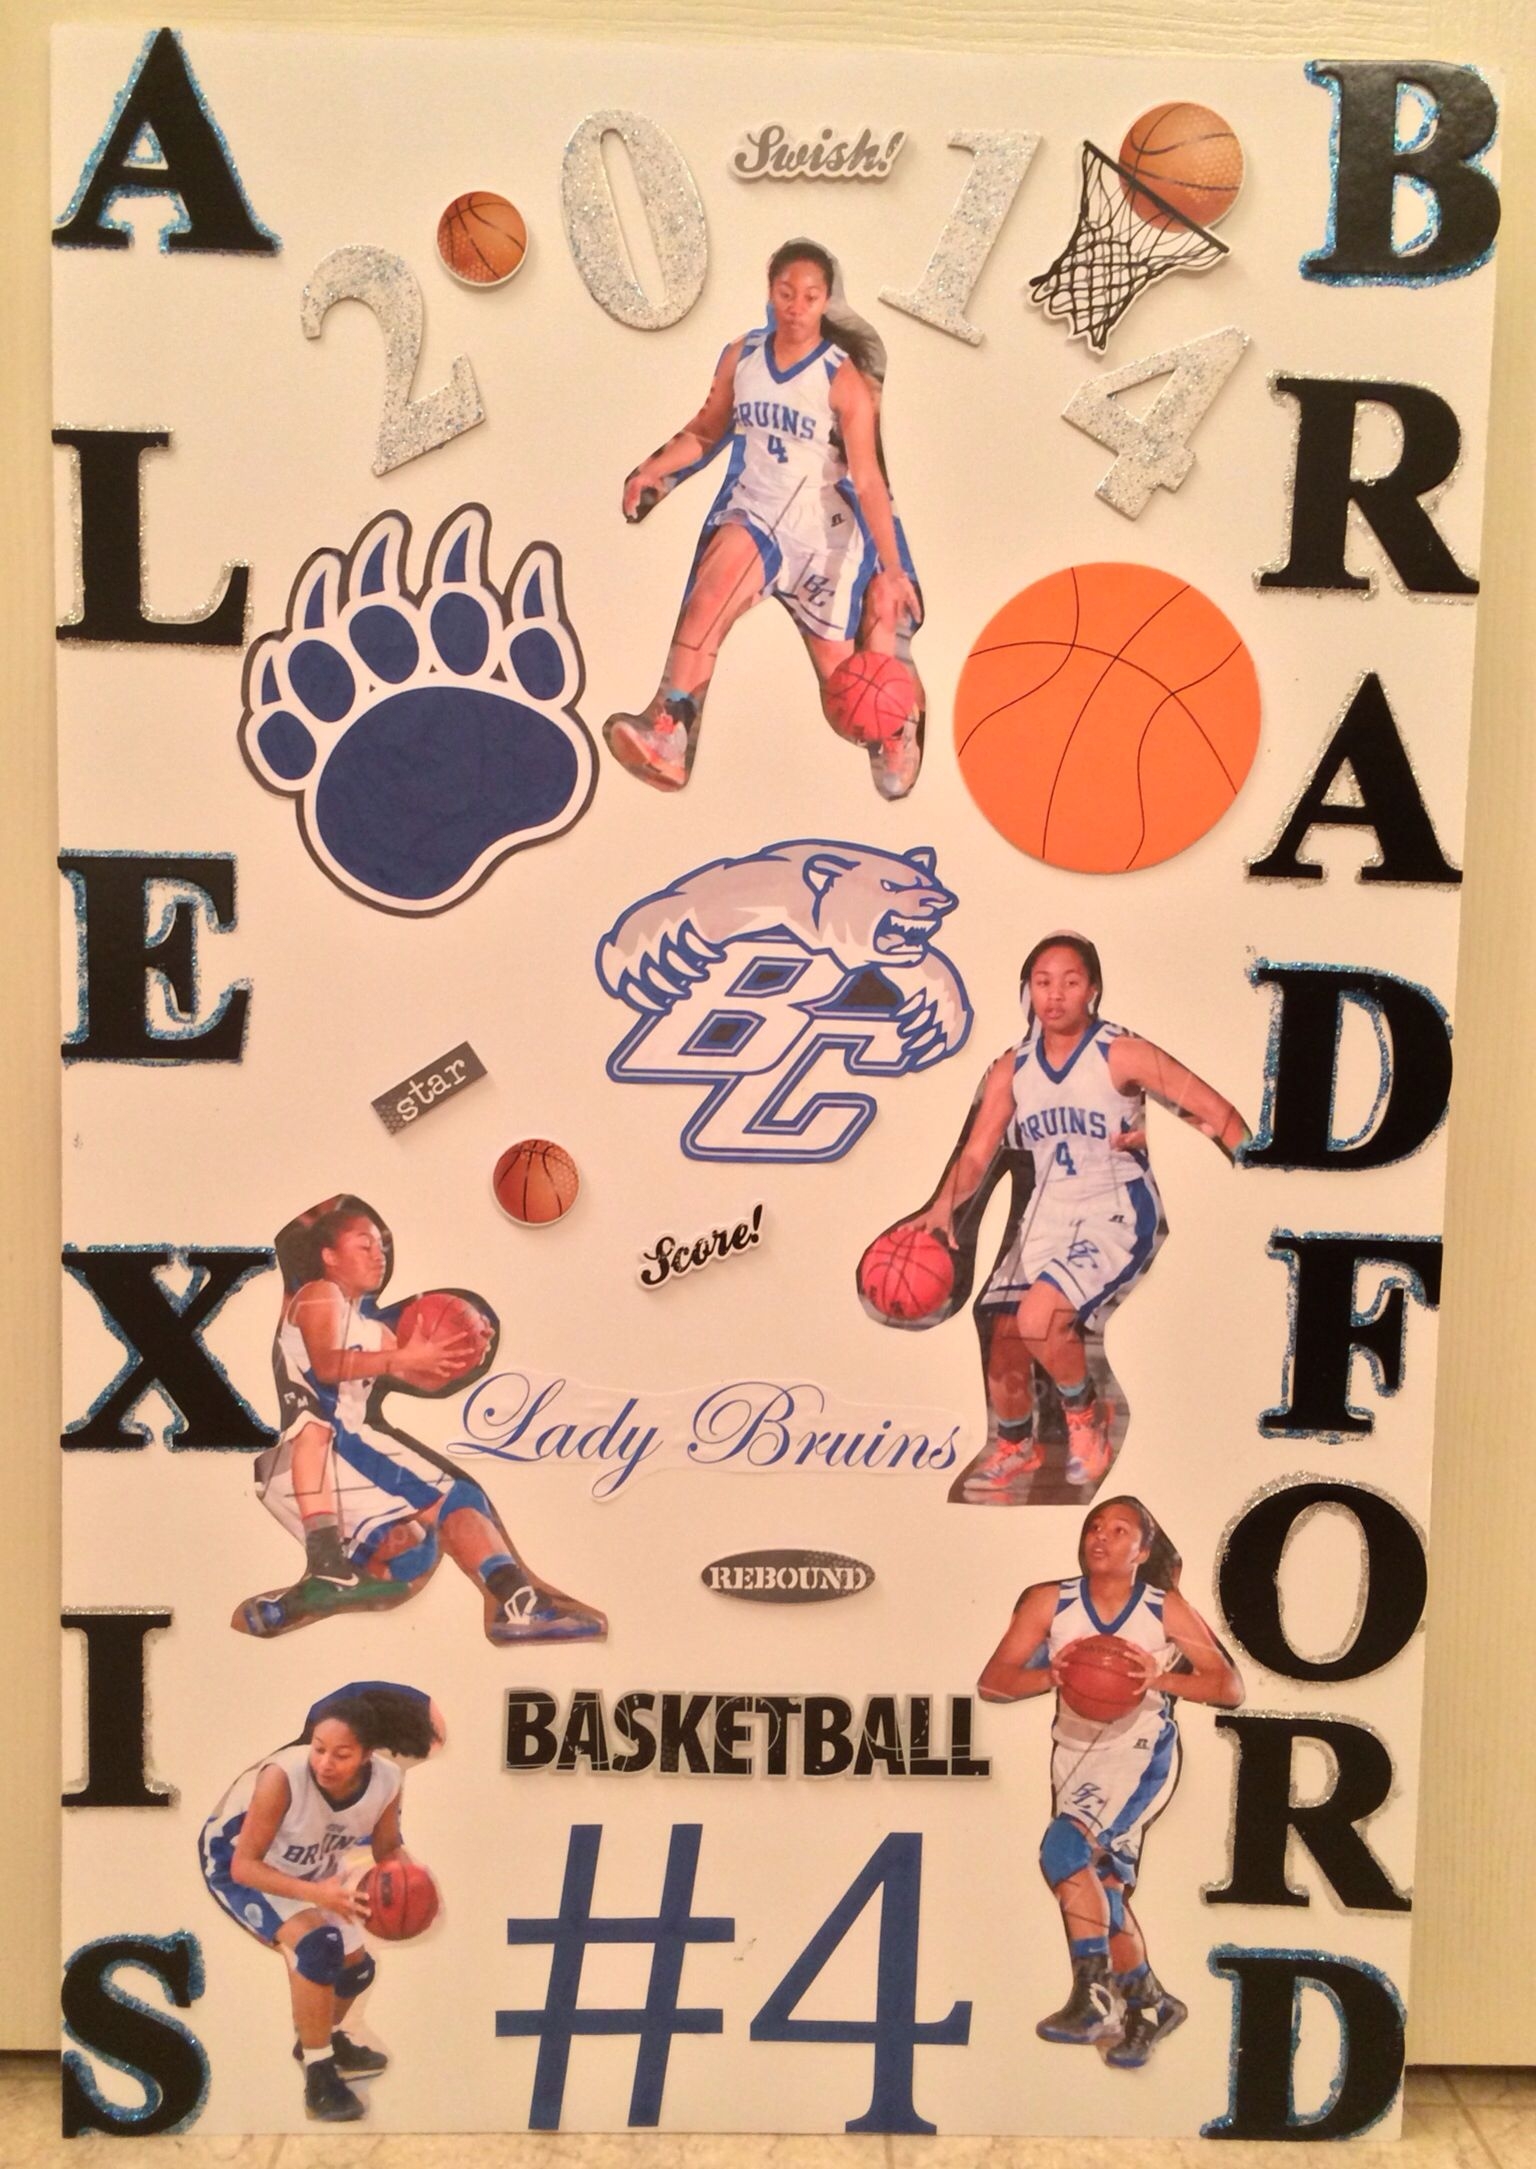 cute basketball poster for teams craft ideas senior night poster basketball bruins lady bruins bear creek high school